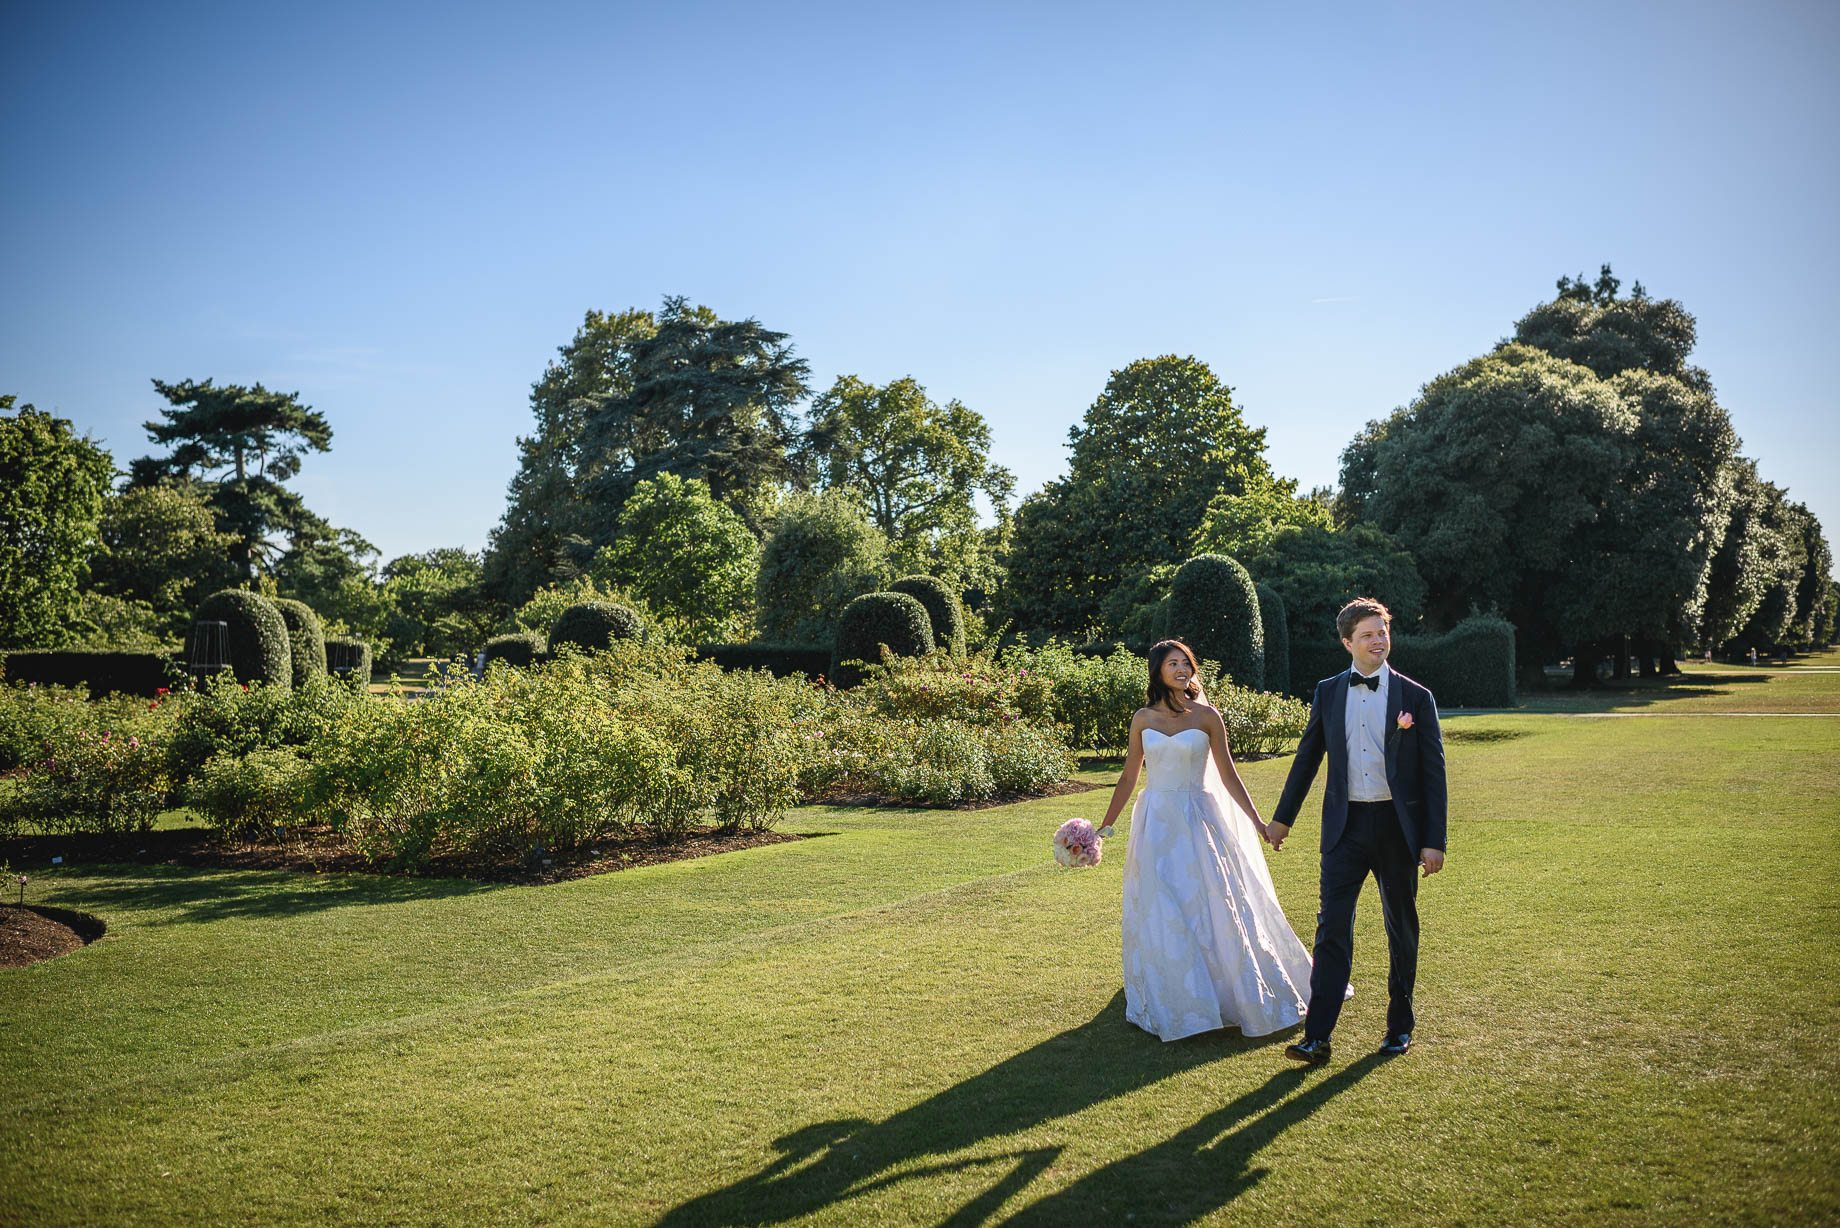 Kew Gardens wedding photography - Guy Collier Photography - Gloria and Frederik (85 of 173)